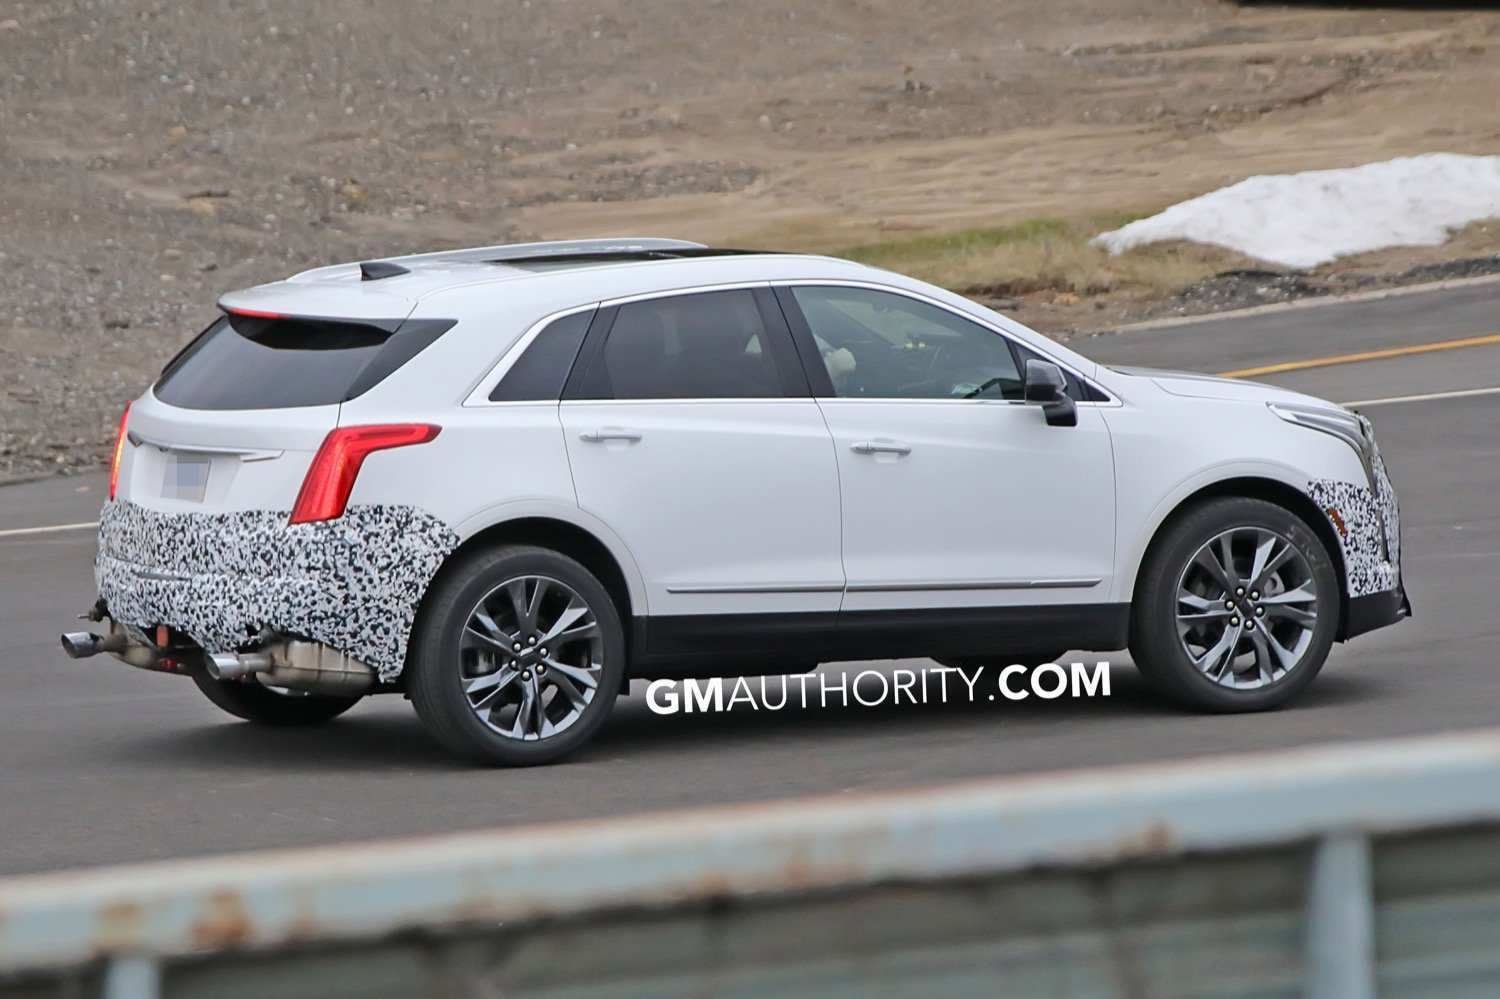 74 Best Review 2019 Spy Shots Cadillac Xt5 Specs with 2019 Spy Shots Cadillac Xt5